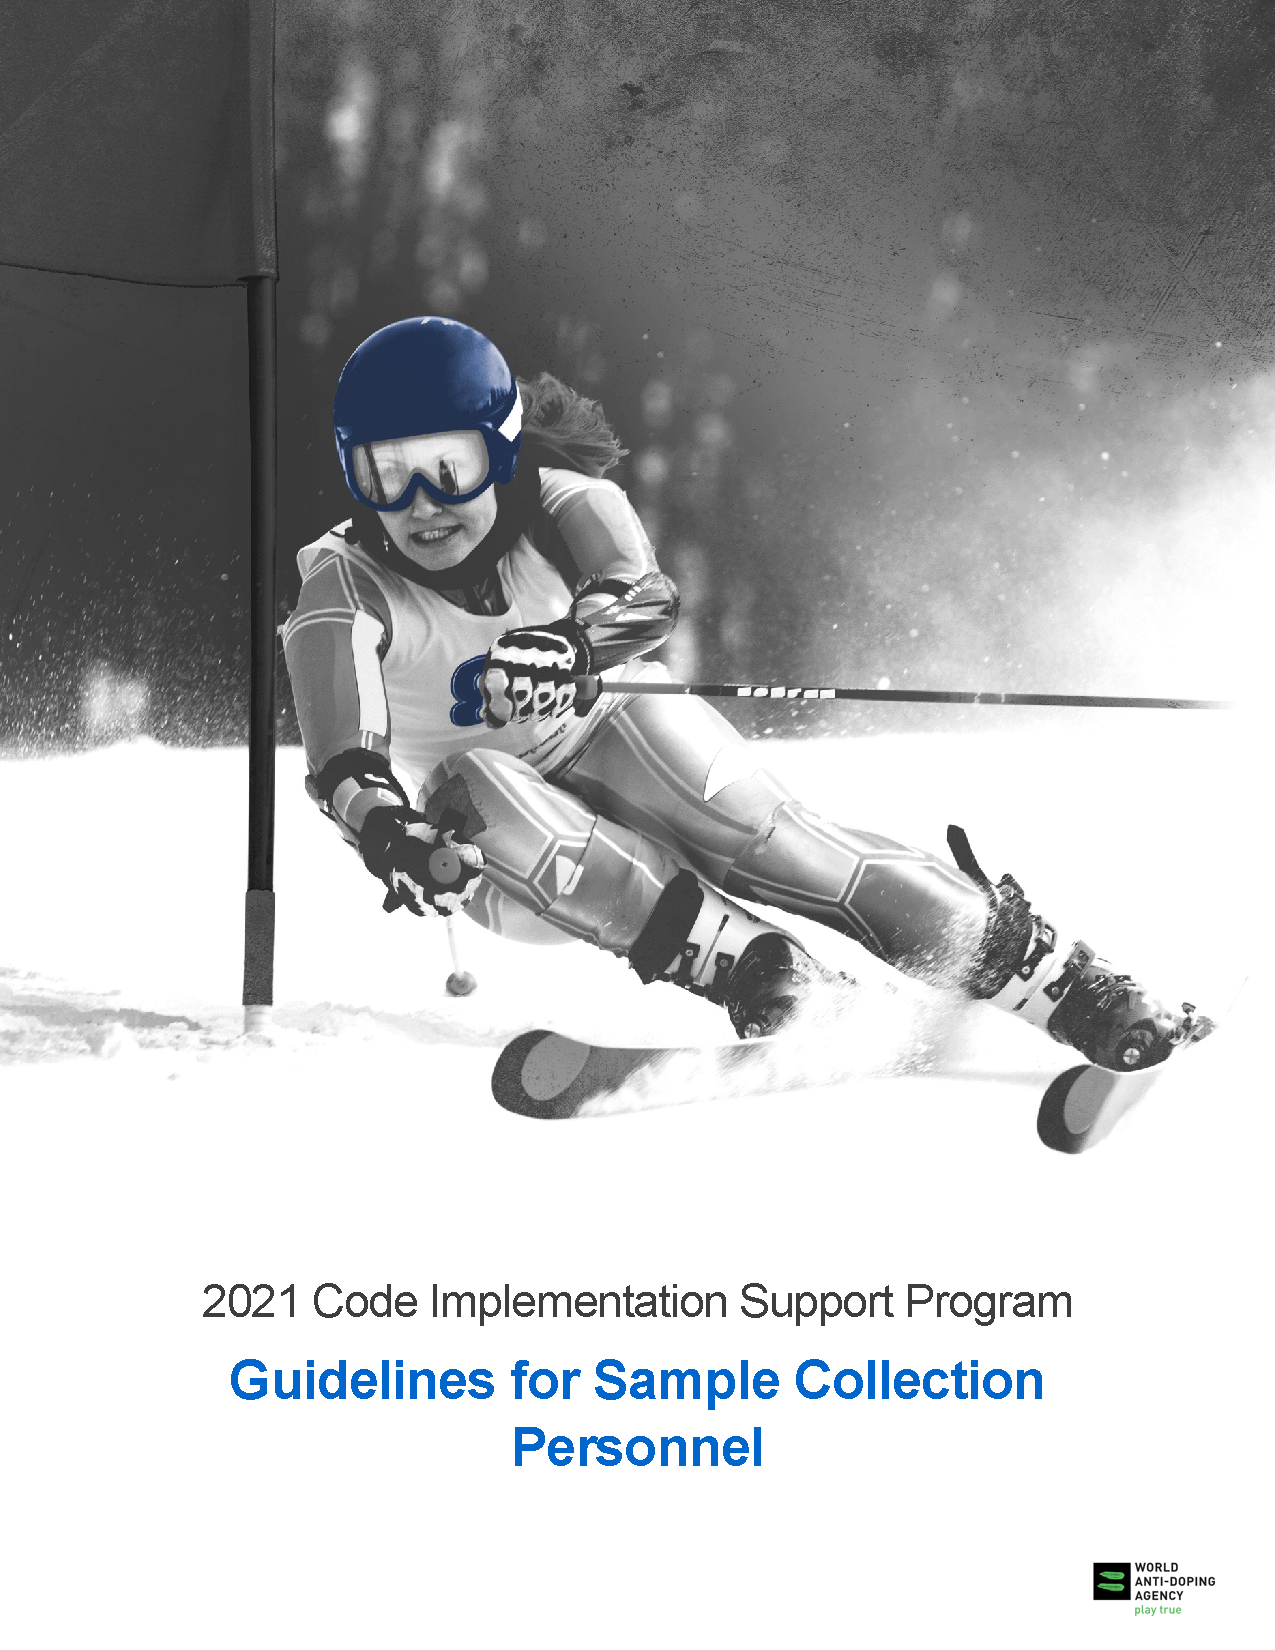 Guidelines for Sample Collection Personnel